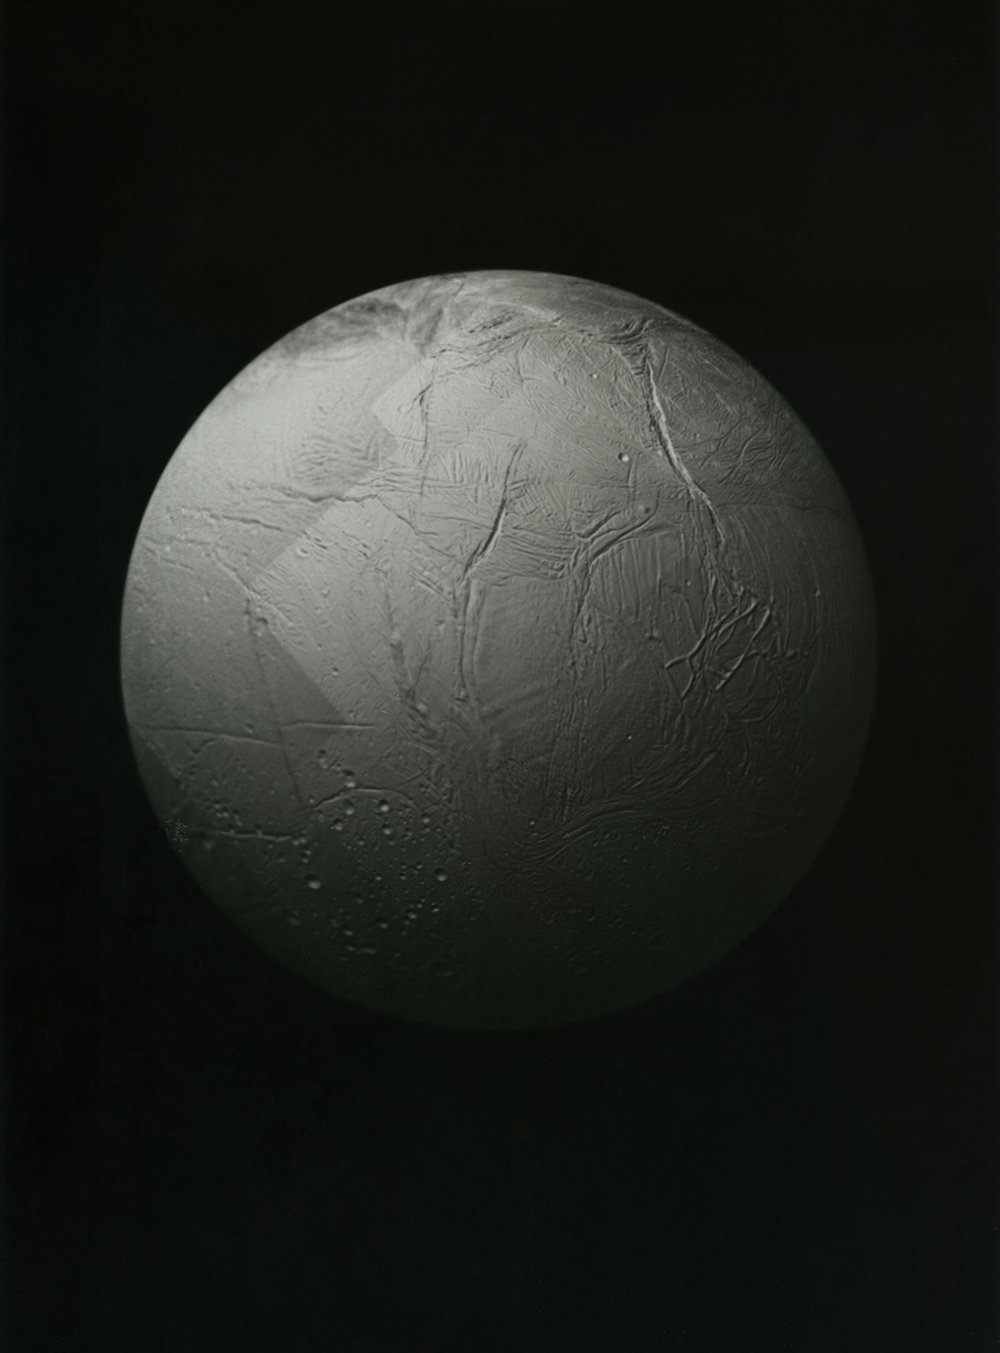 Body 3 - Enceladus (NASA:JPL:ESA:University of Arizona) Digital Version